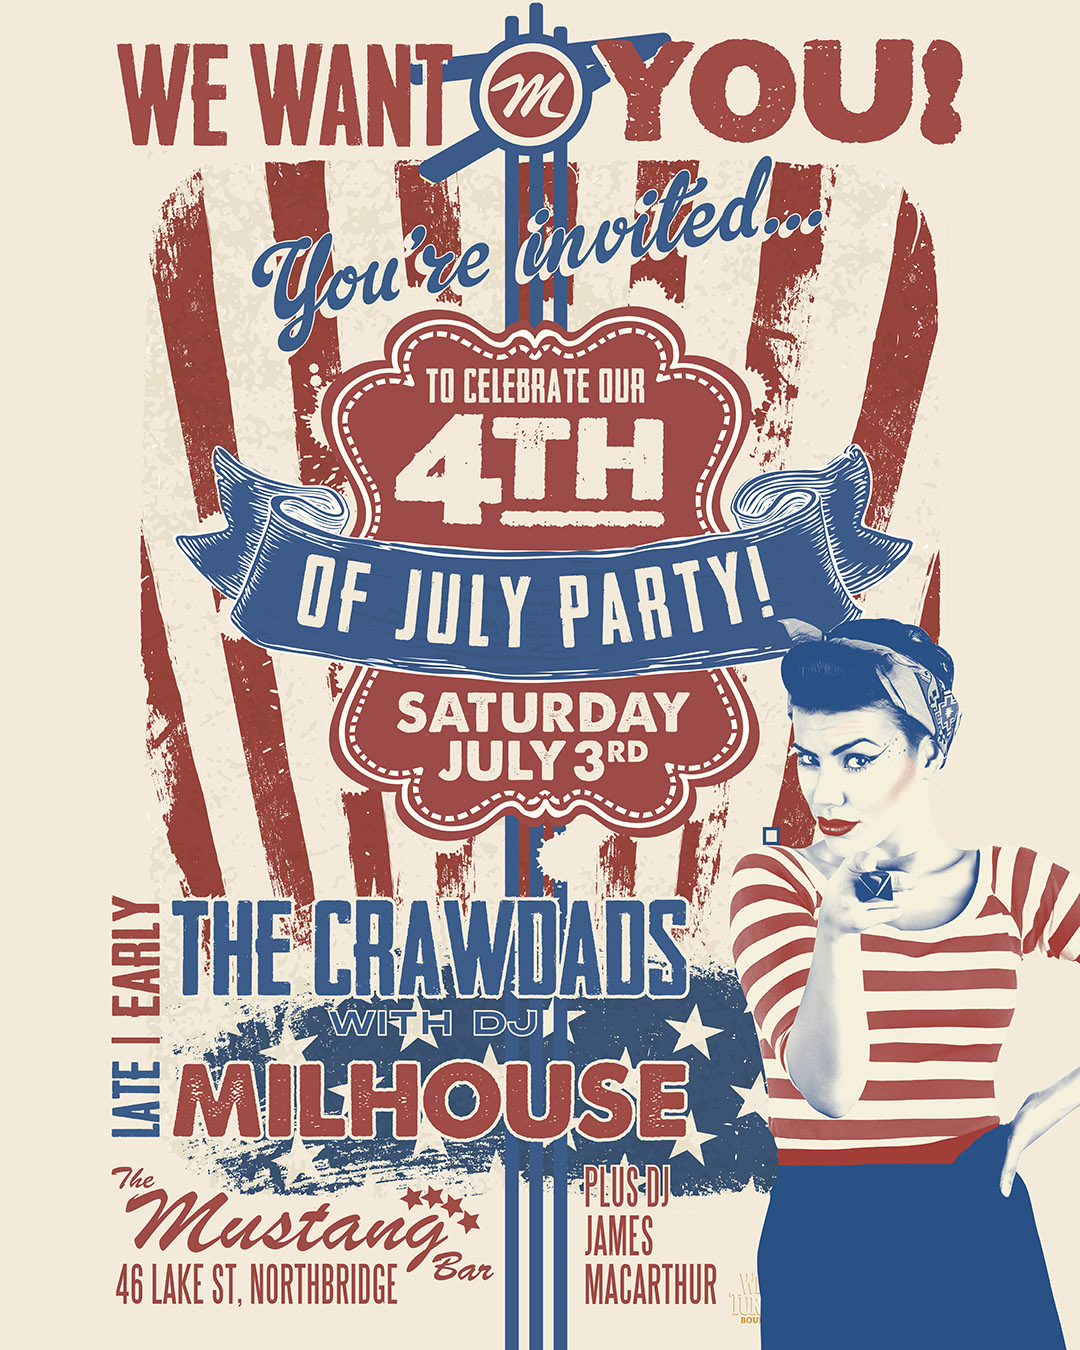 4th July Party 2021!